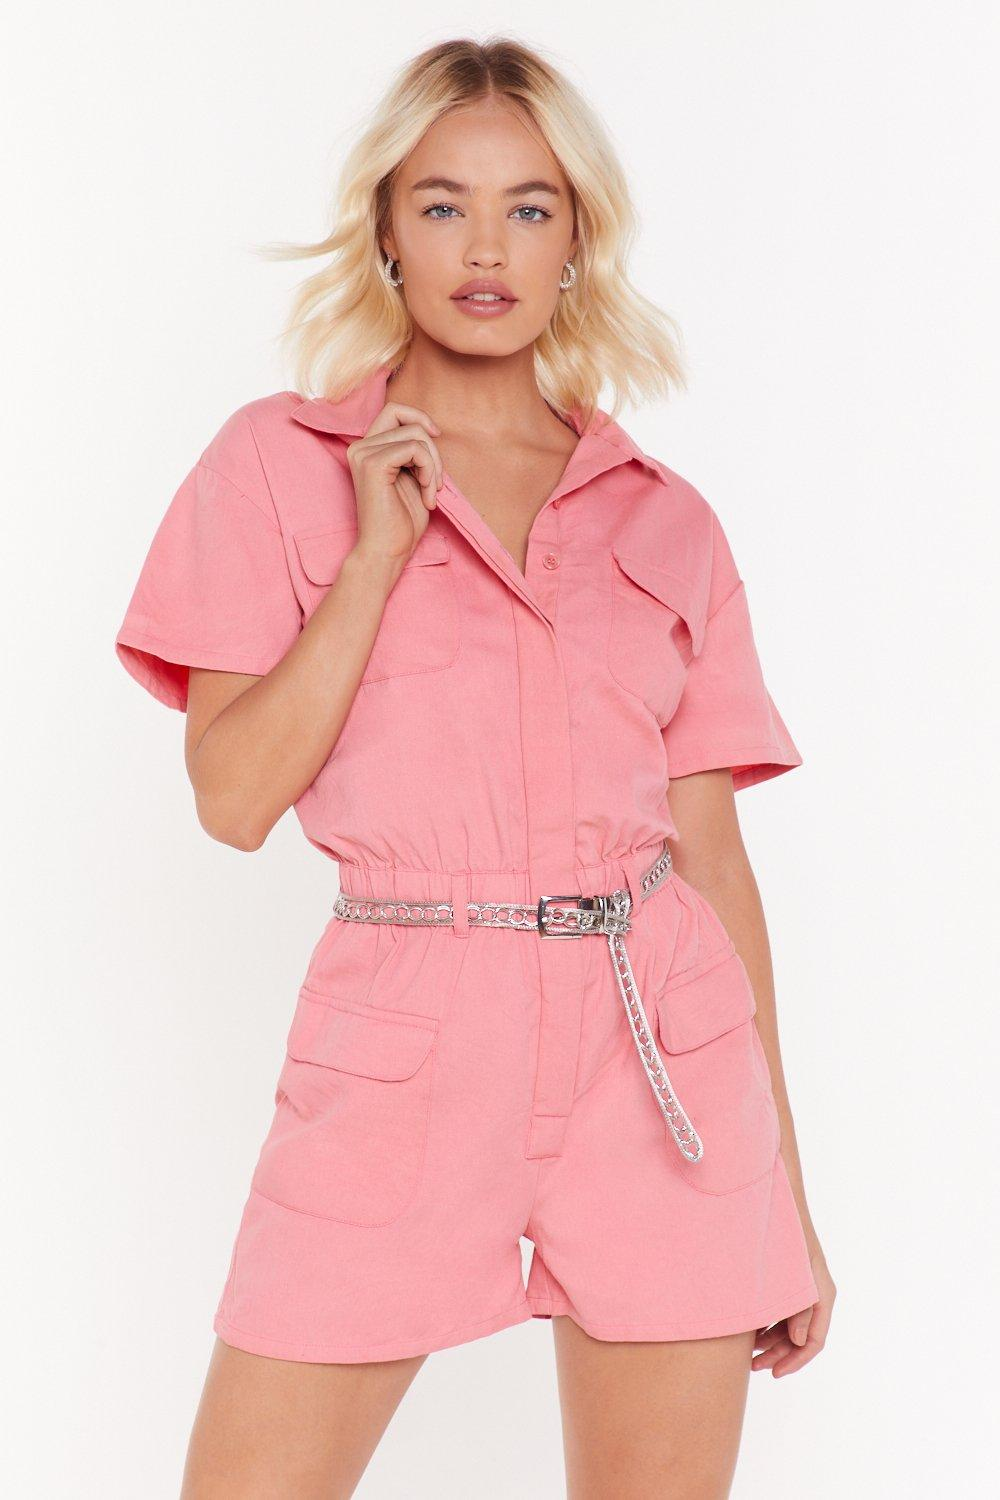 professional sale rock-bottom price better Denim Romper | Shop Clothes at Nasty Gal!